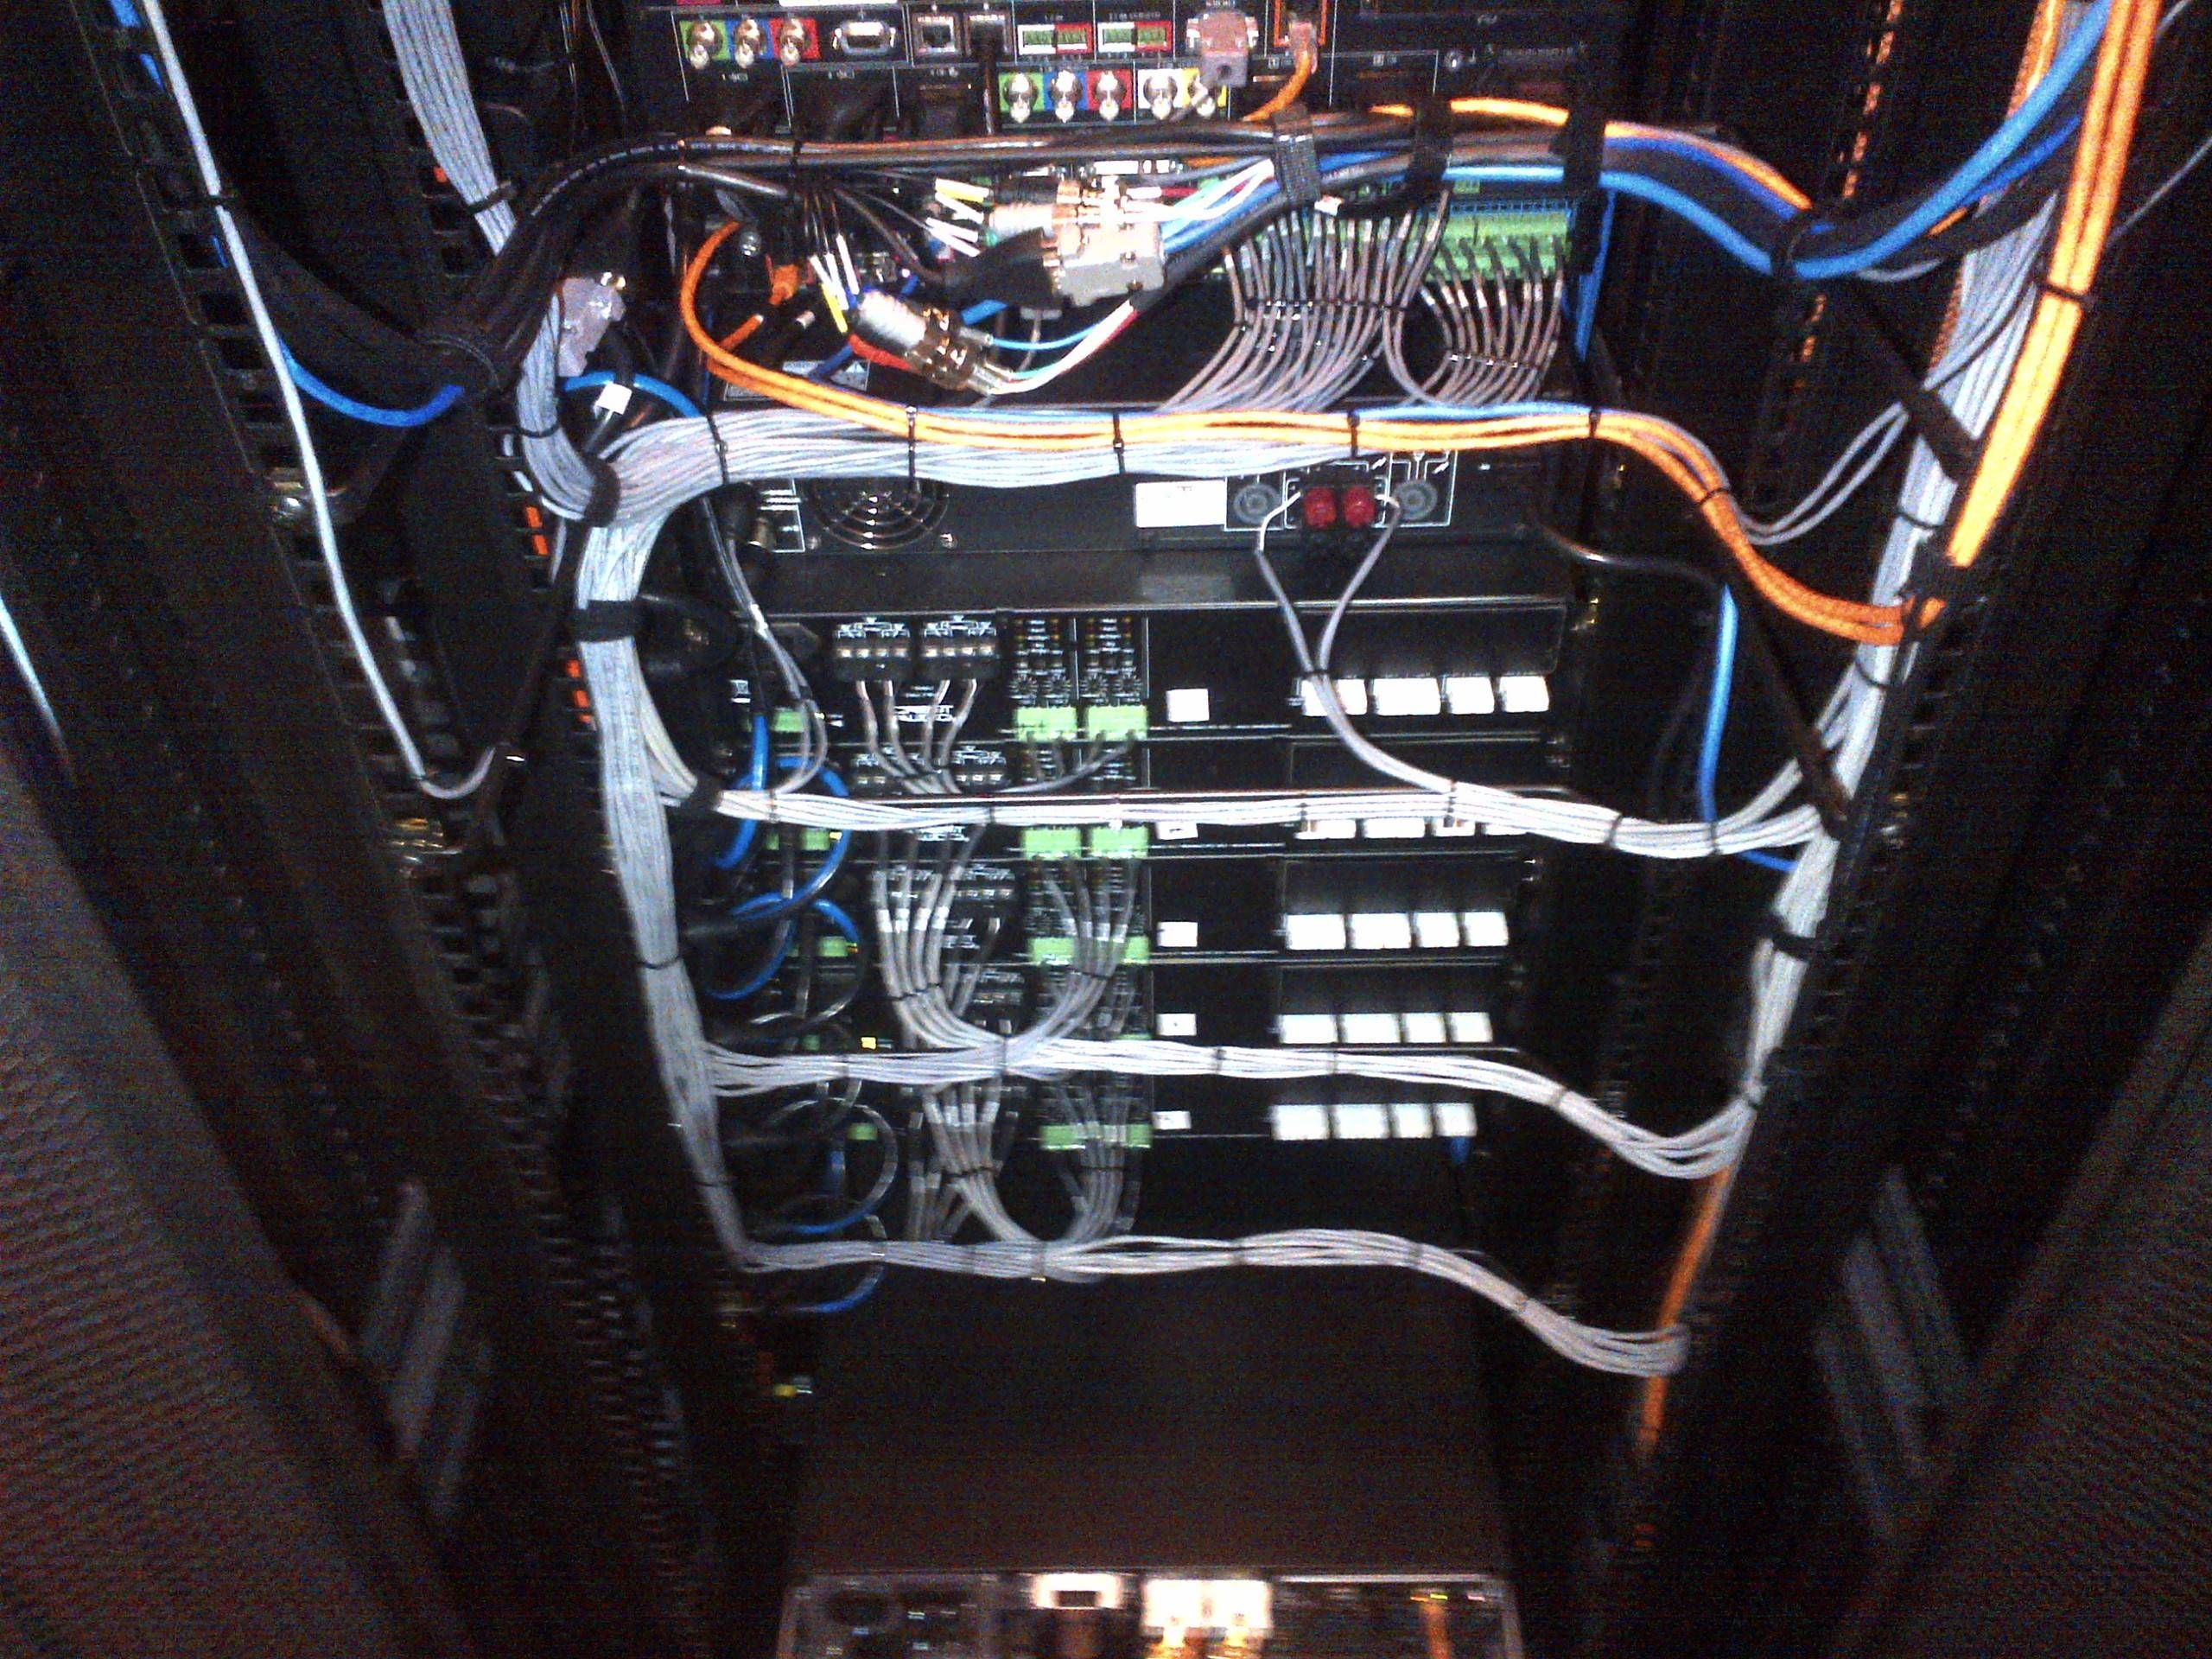 Pin on Cable Management